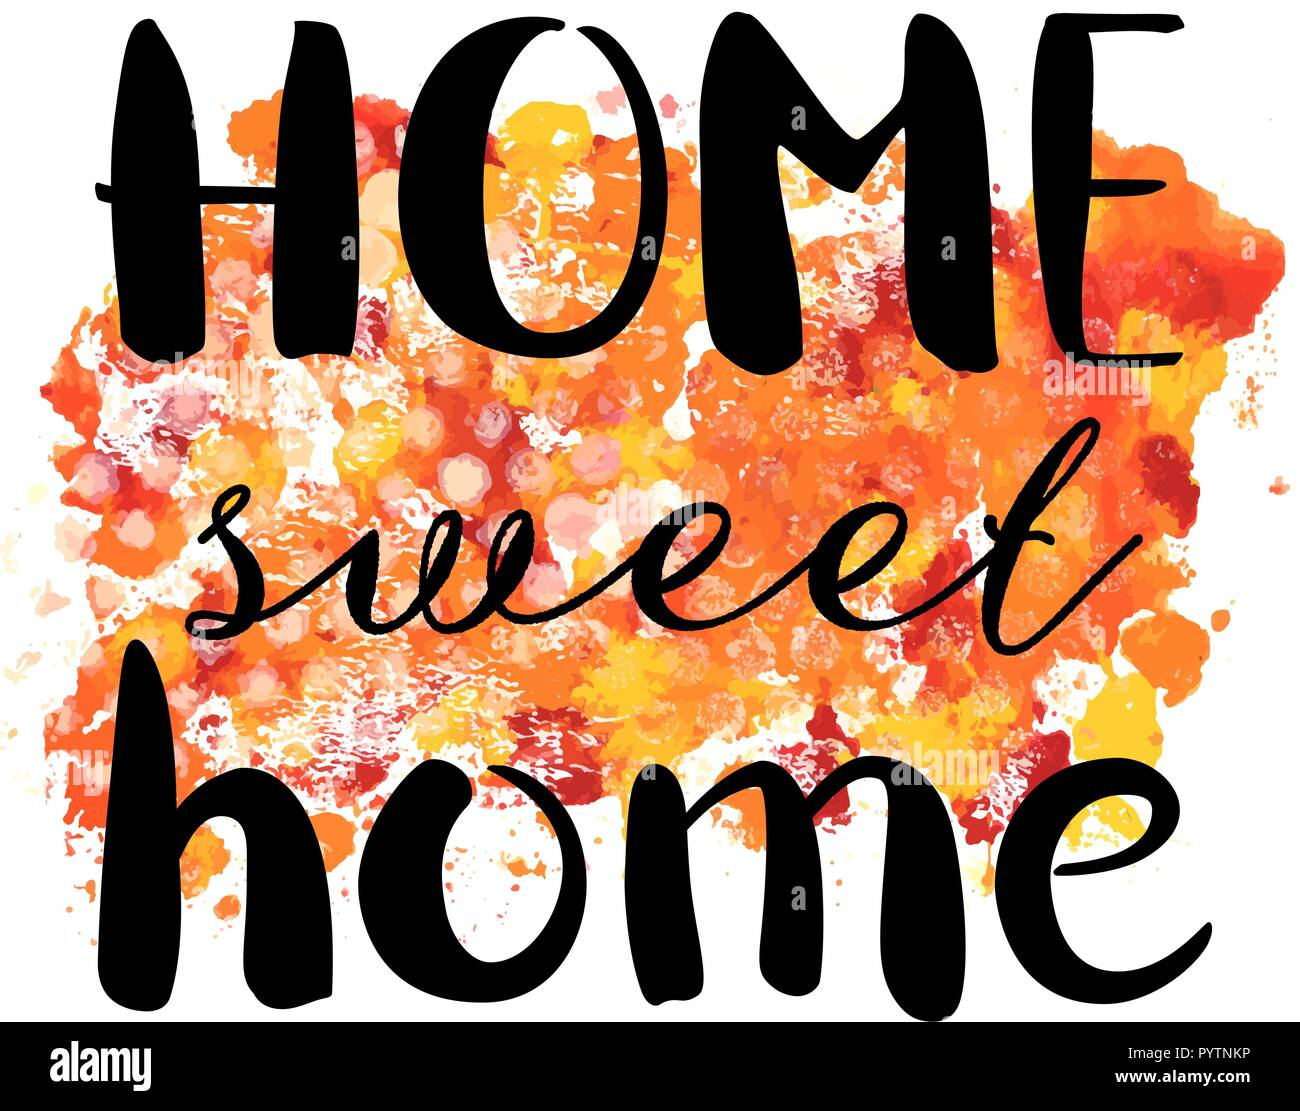 Home Sweet Home, a decorative design with hand drawn lettering and a watercolour texture, vector illustration - Stock Vector